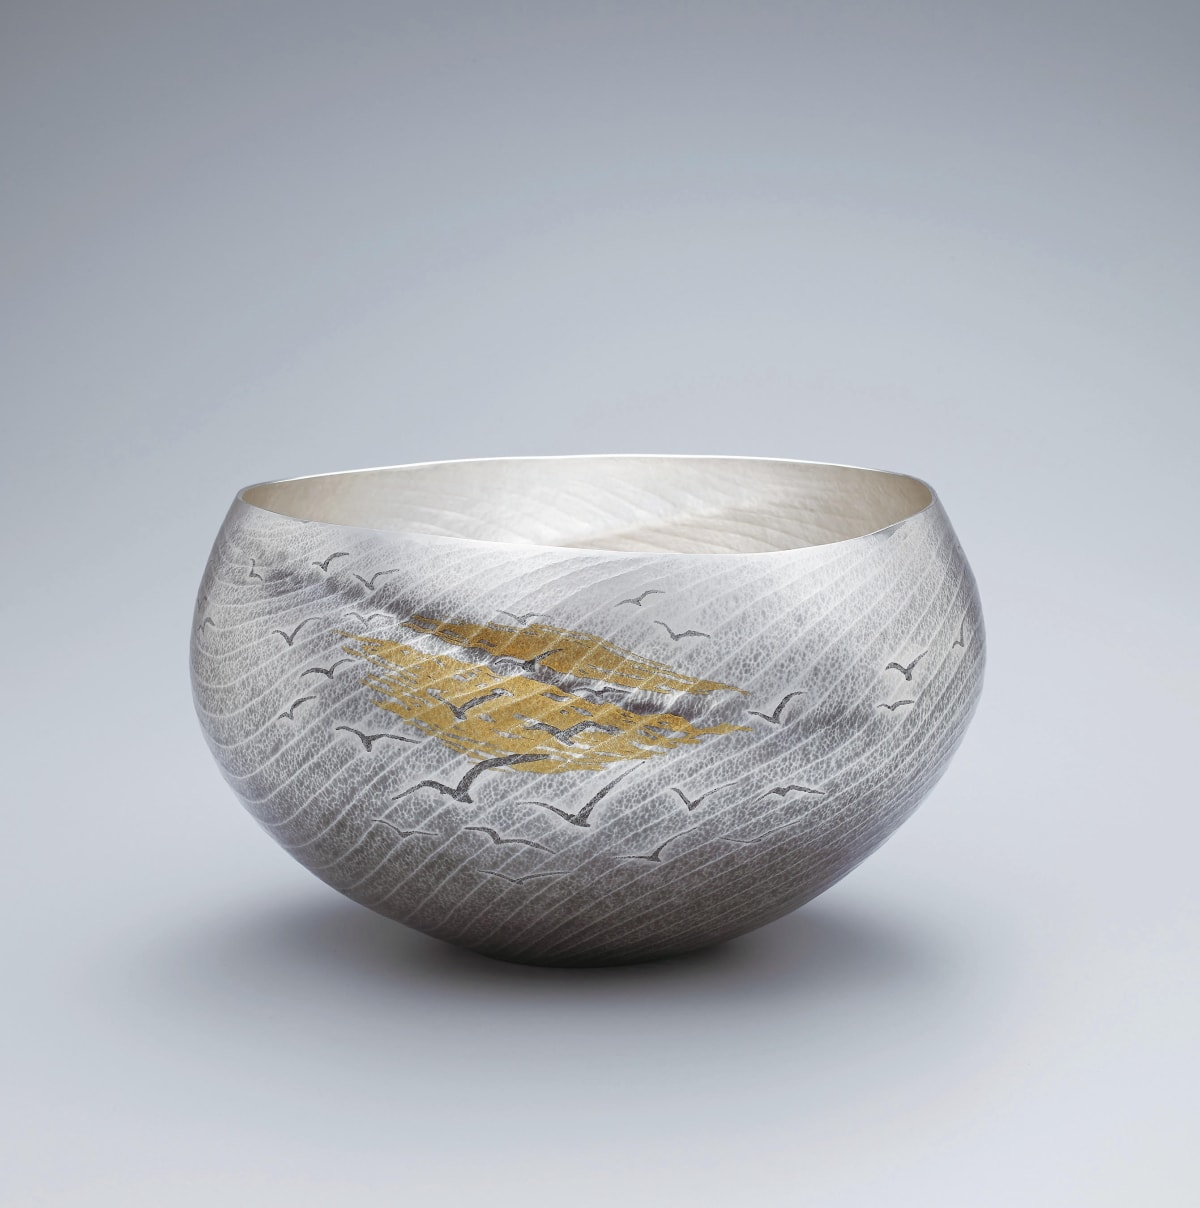 Contemporary Japanese Metalwork, Ceramics and Paintings at Palm Beach Modern + Contemporary 2020